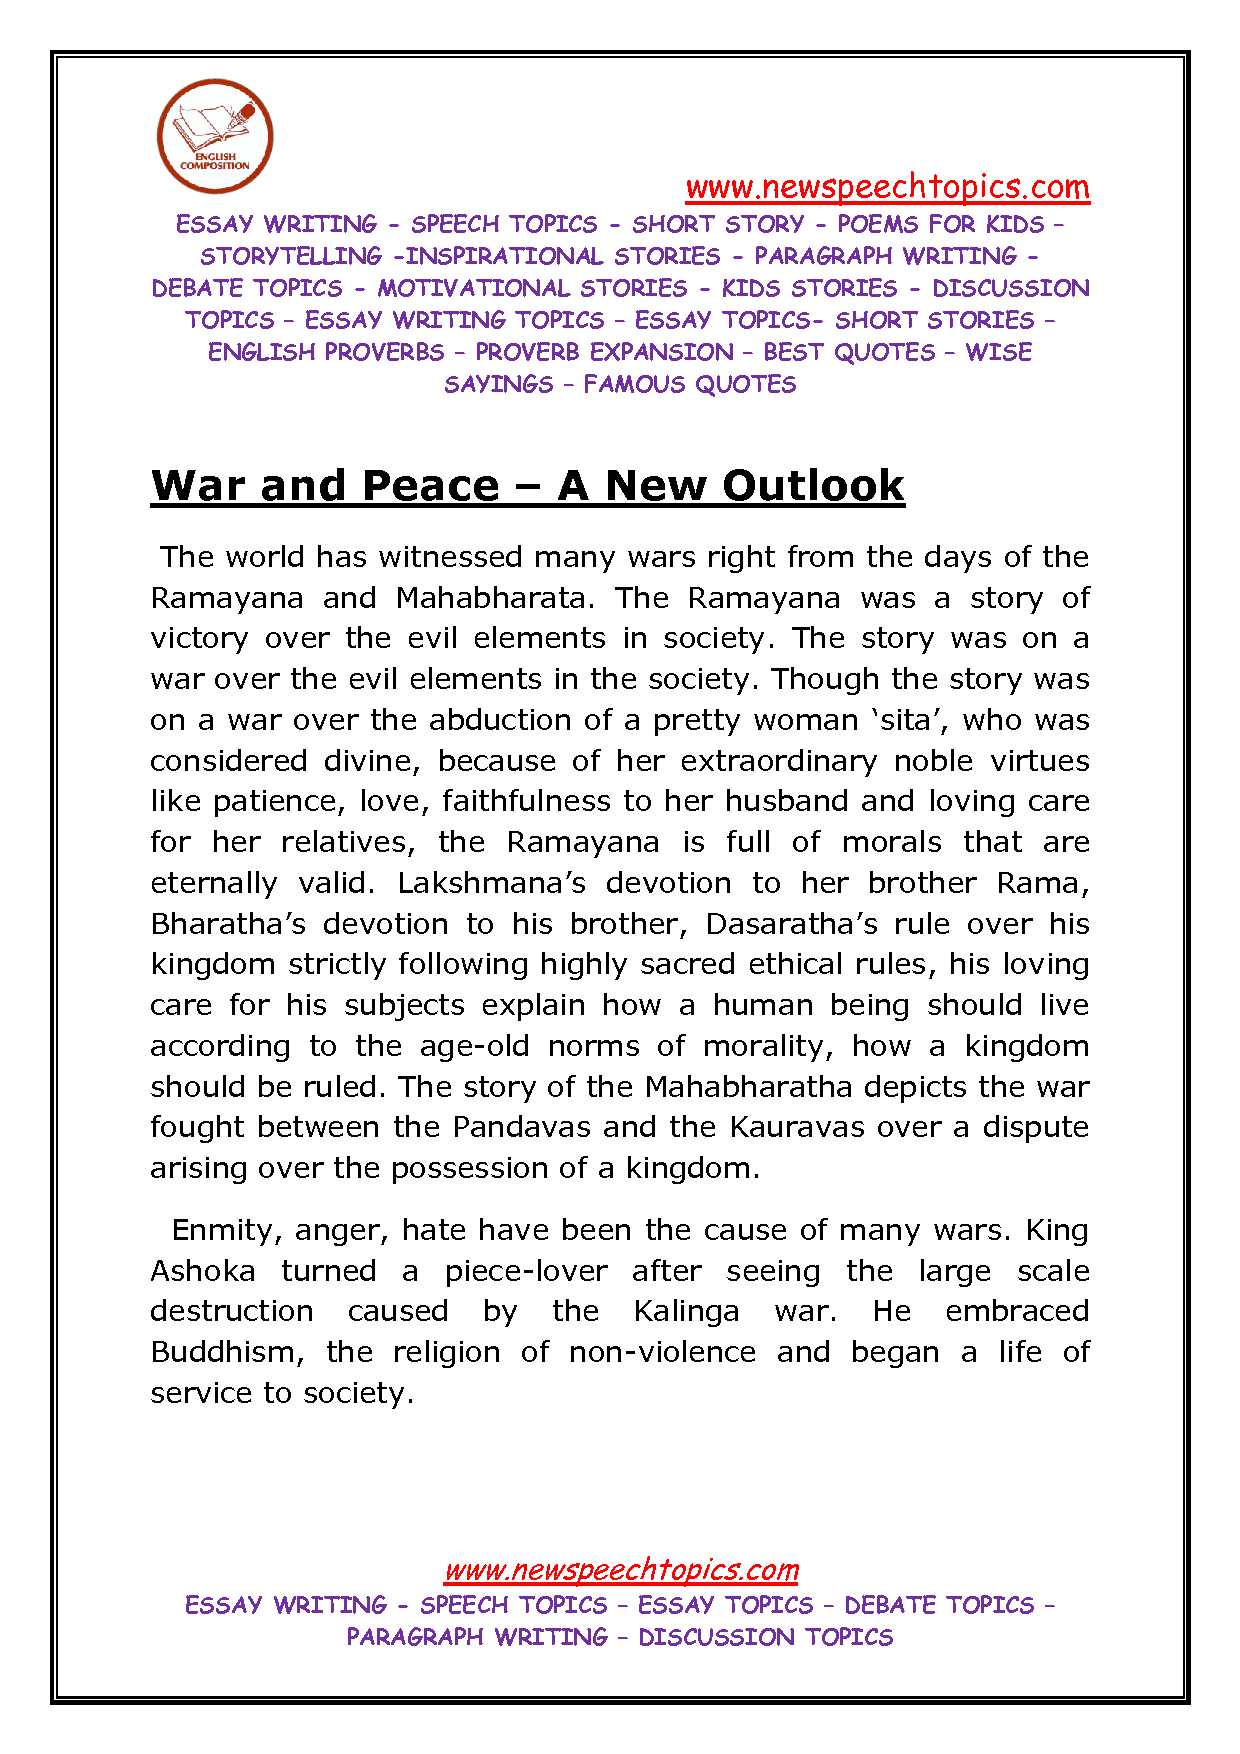 peace essay for kids  an essay on world peace day for kids students and children